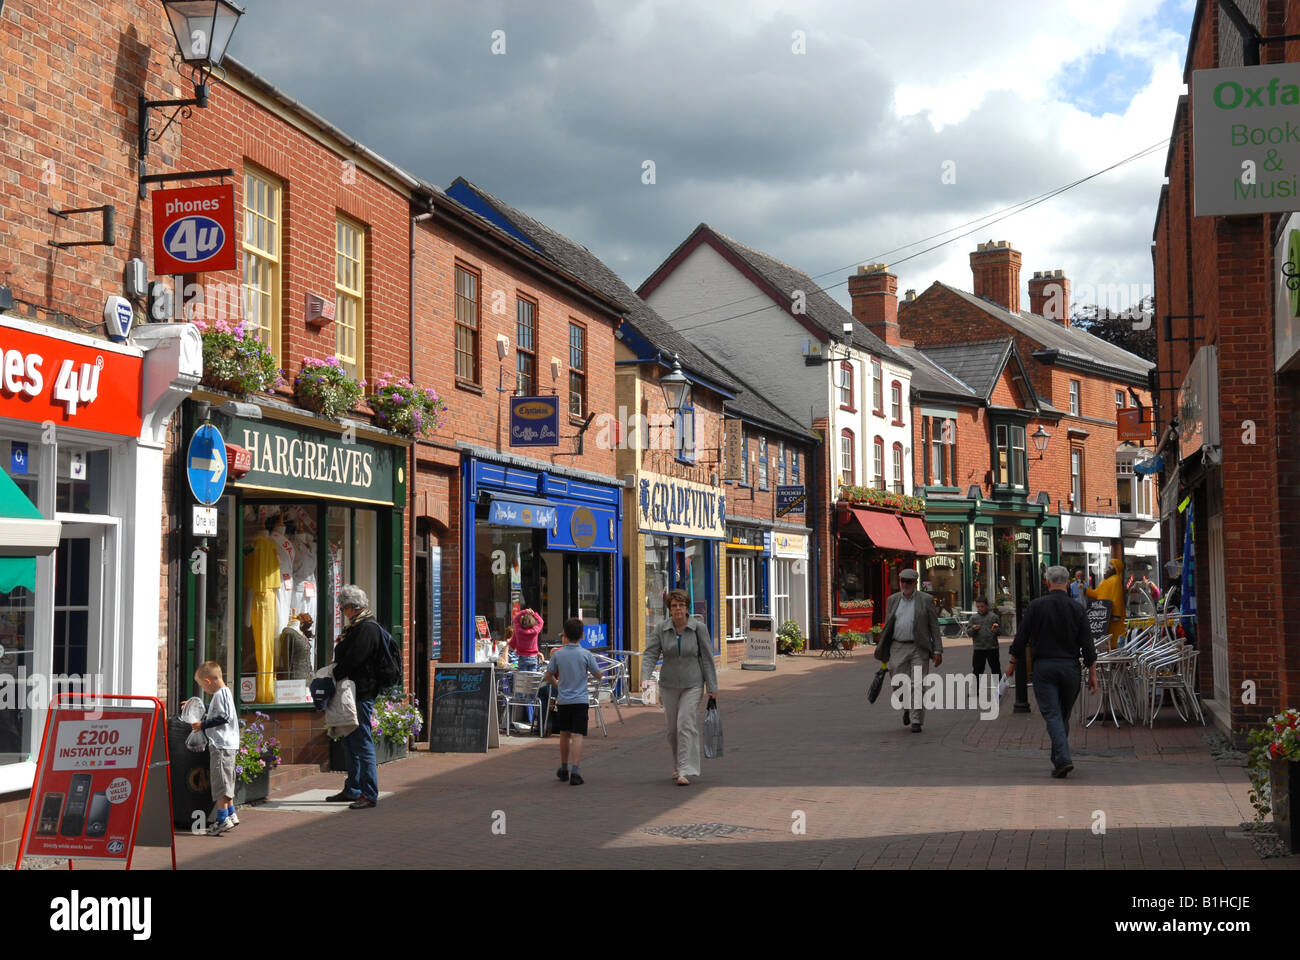 Pepper Street in Nantwich Cheshire England - Stock Image